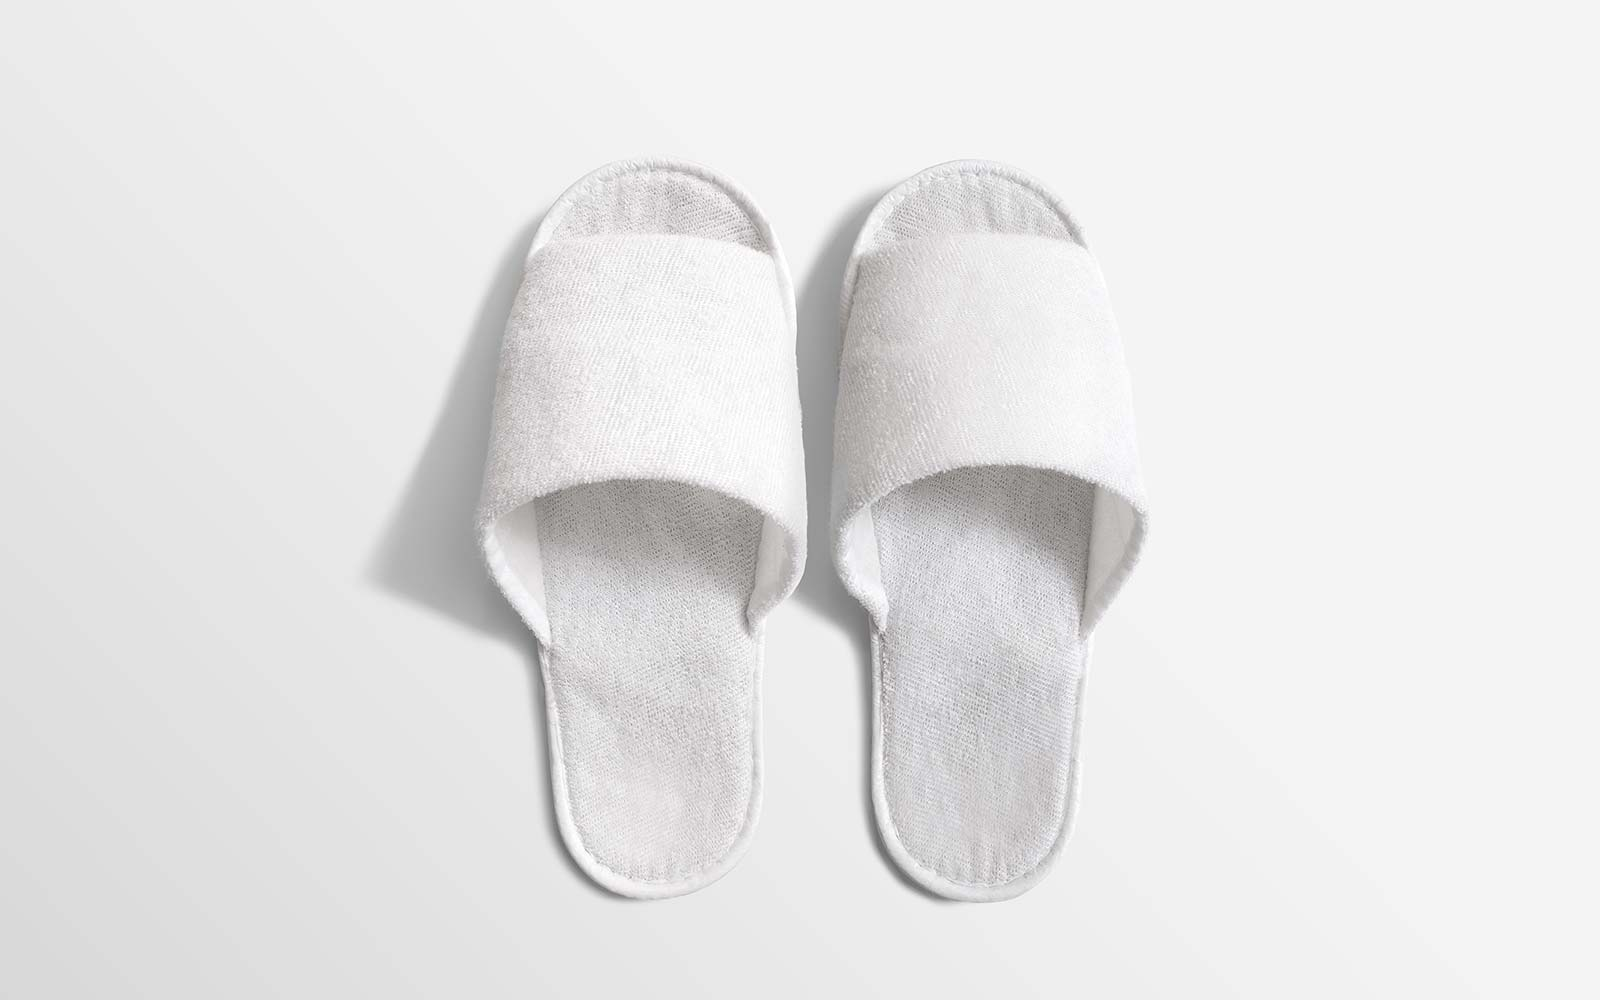 Travel Packing Essentials Hotel Slippers